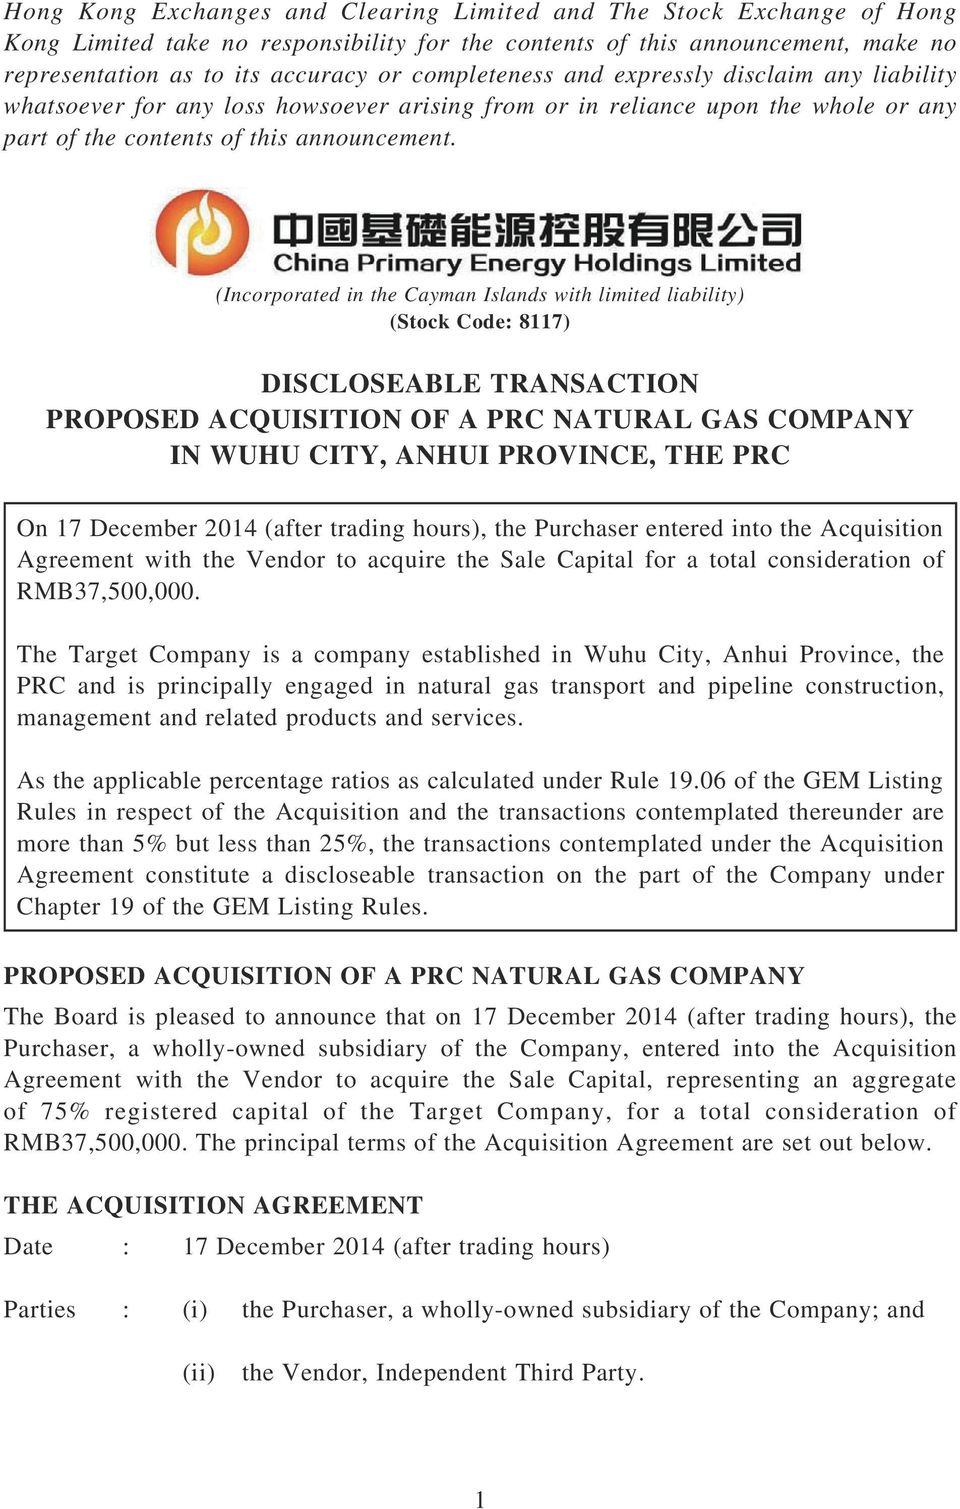 (Incorporated in the Cayman Islands with limited liability) (Stock Code: 8117) DISCLOSEABLE TRANSACTION PROPOSED ACQUISITION OF A PRC NATURAL GAS COMPANY IN WUHU CITY, ANHUI PROVINCE, THE PRC On 17